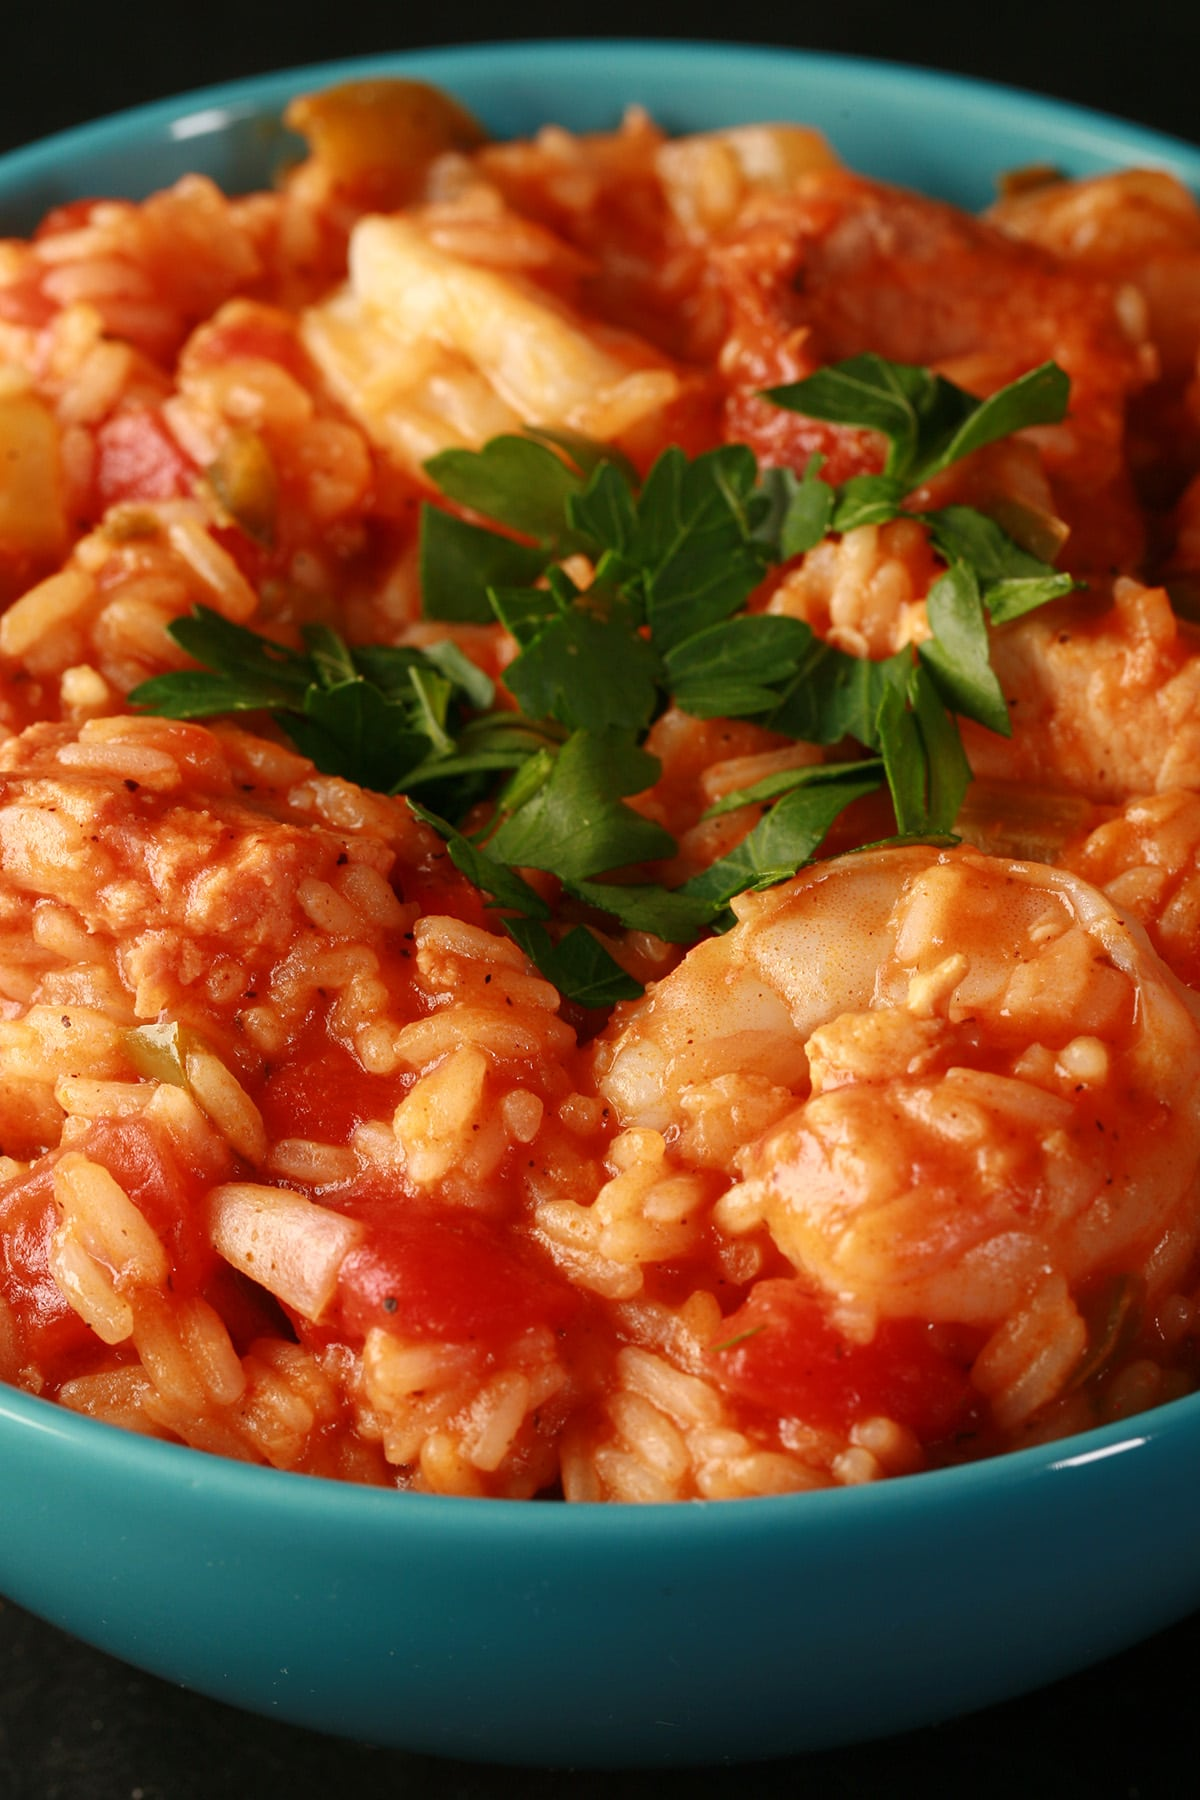 Chicken, shrimp, and sausage jambalaya, in a blue bowl. It is topped with chopped parsley.